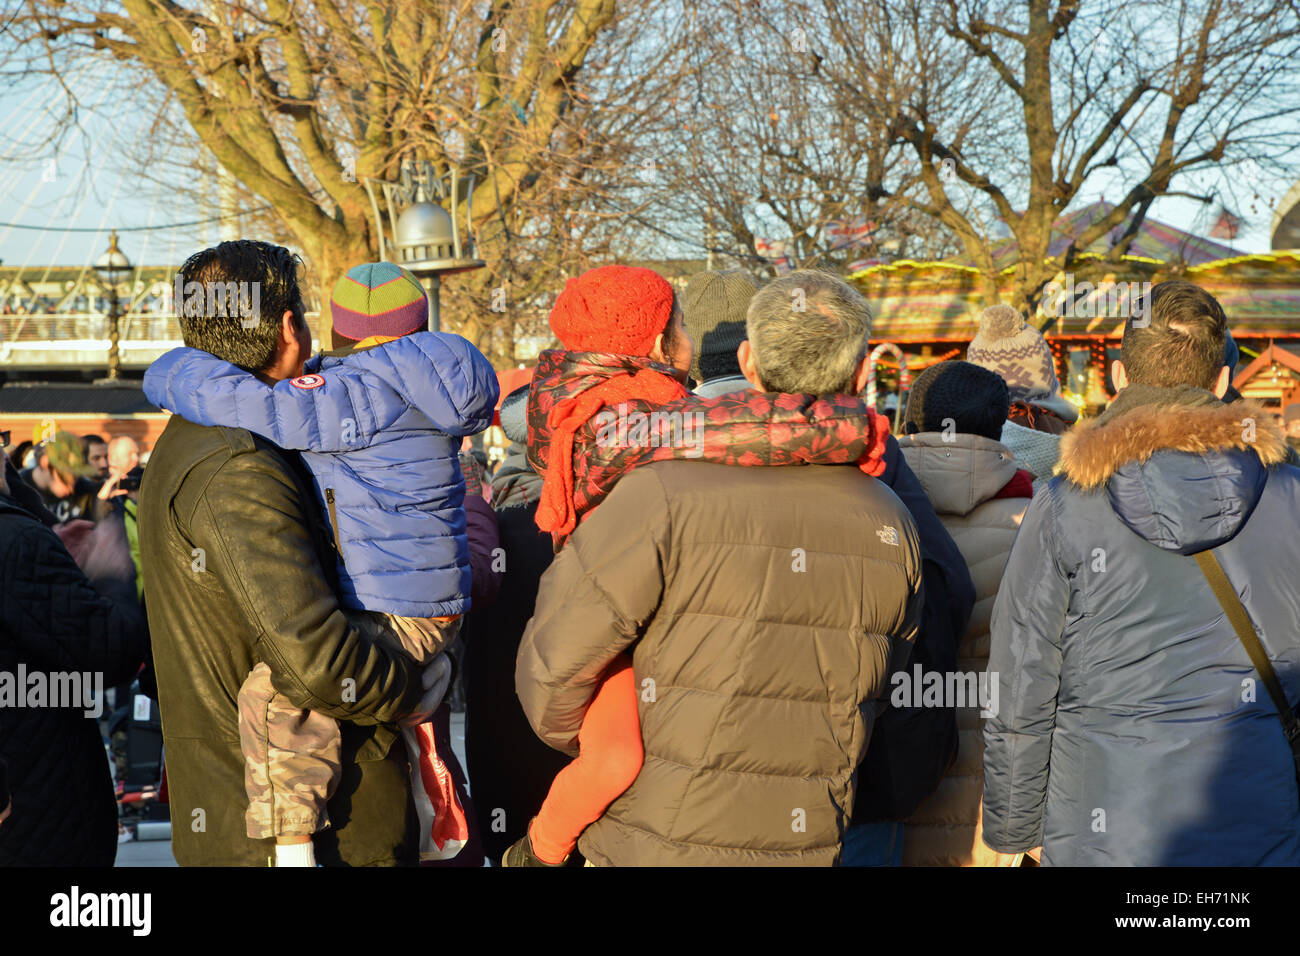 Tourist onlookers on the Embankment London UK - Stock Image